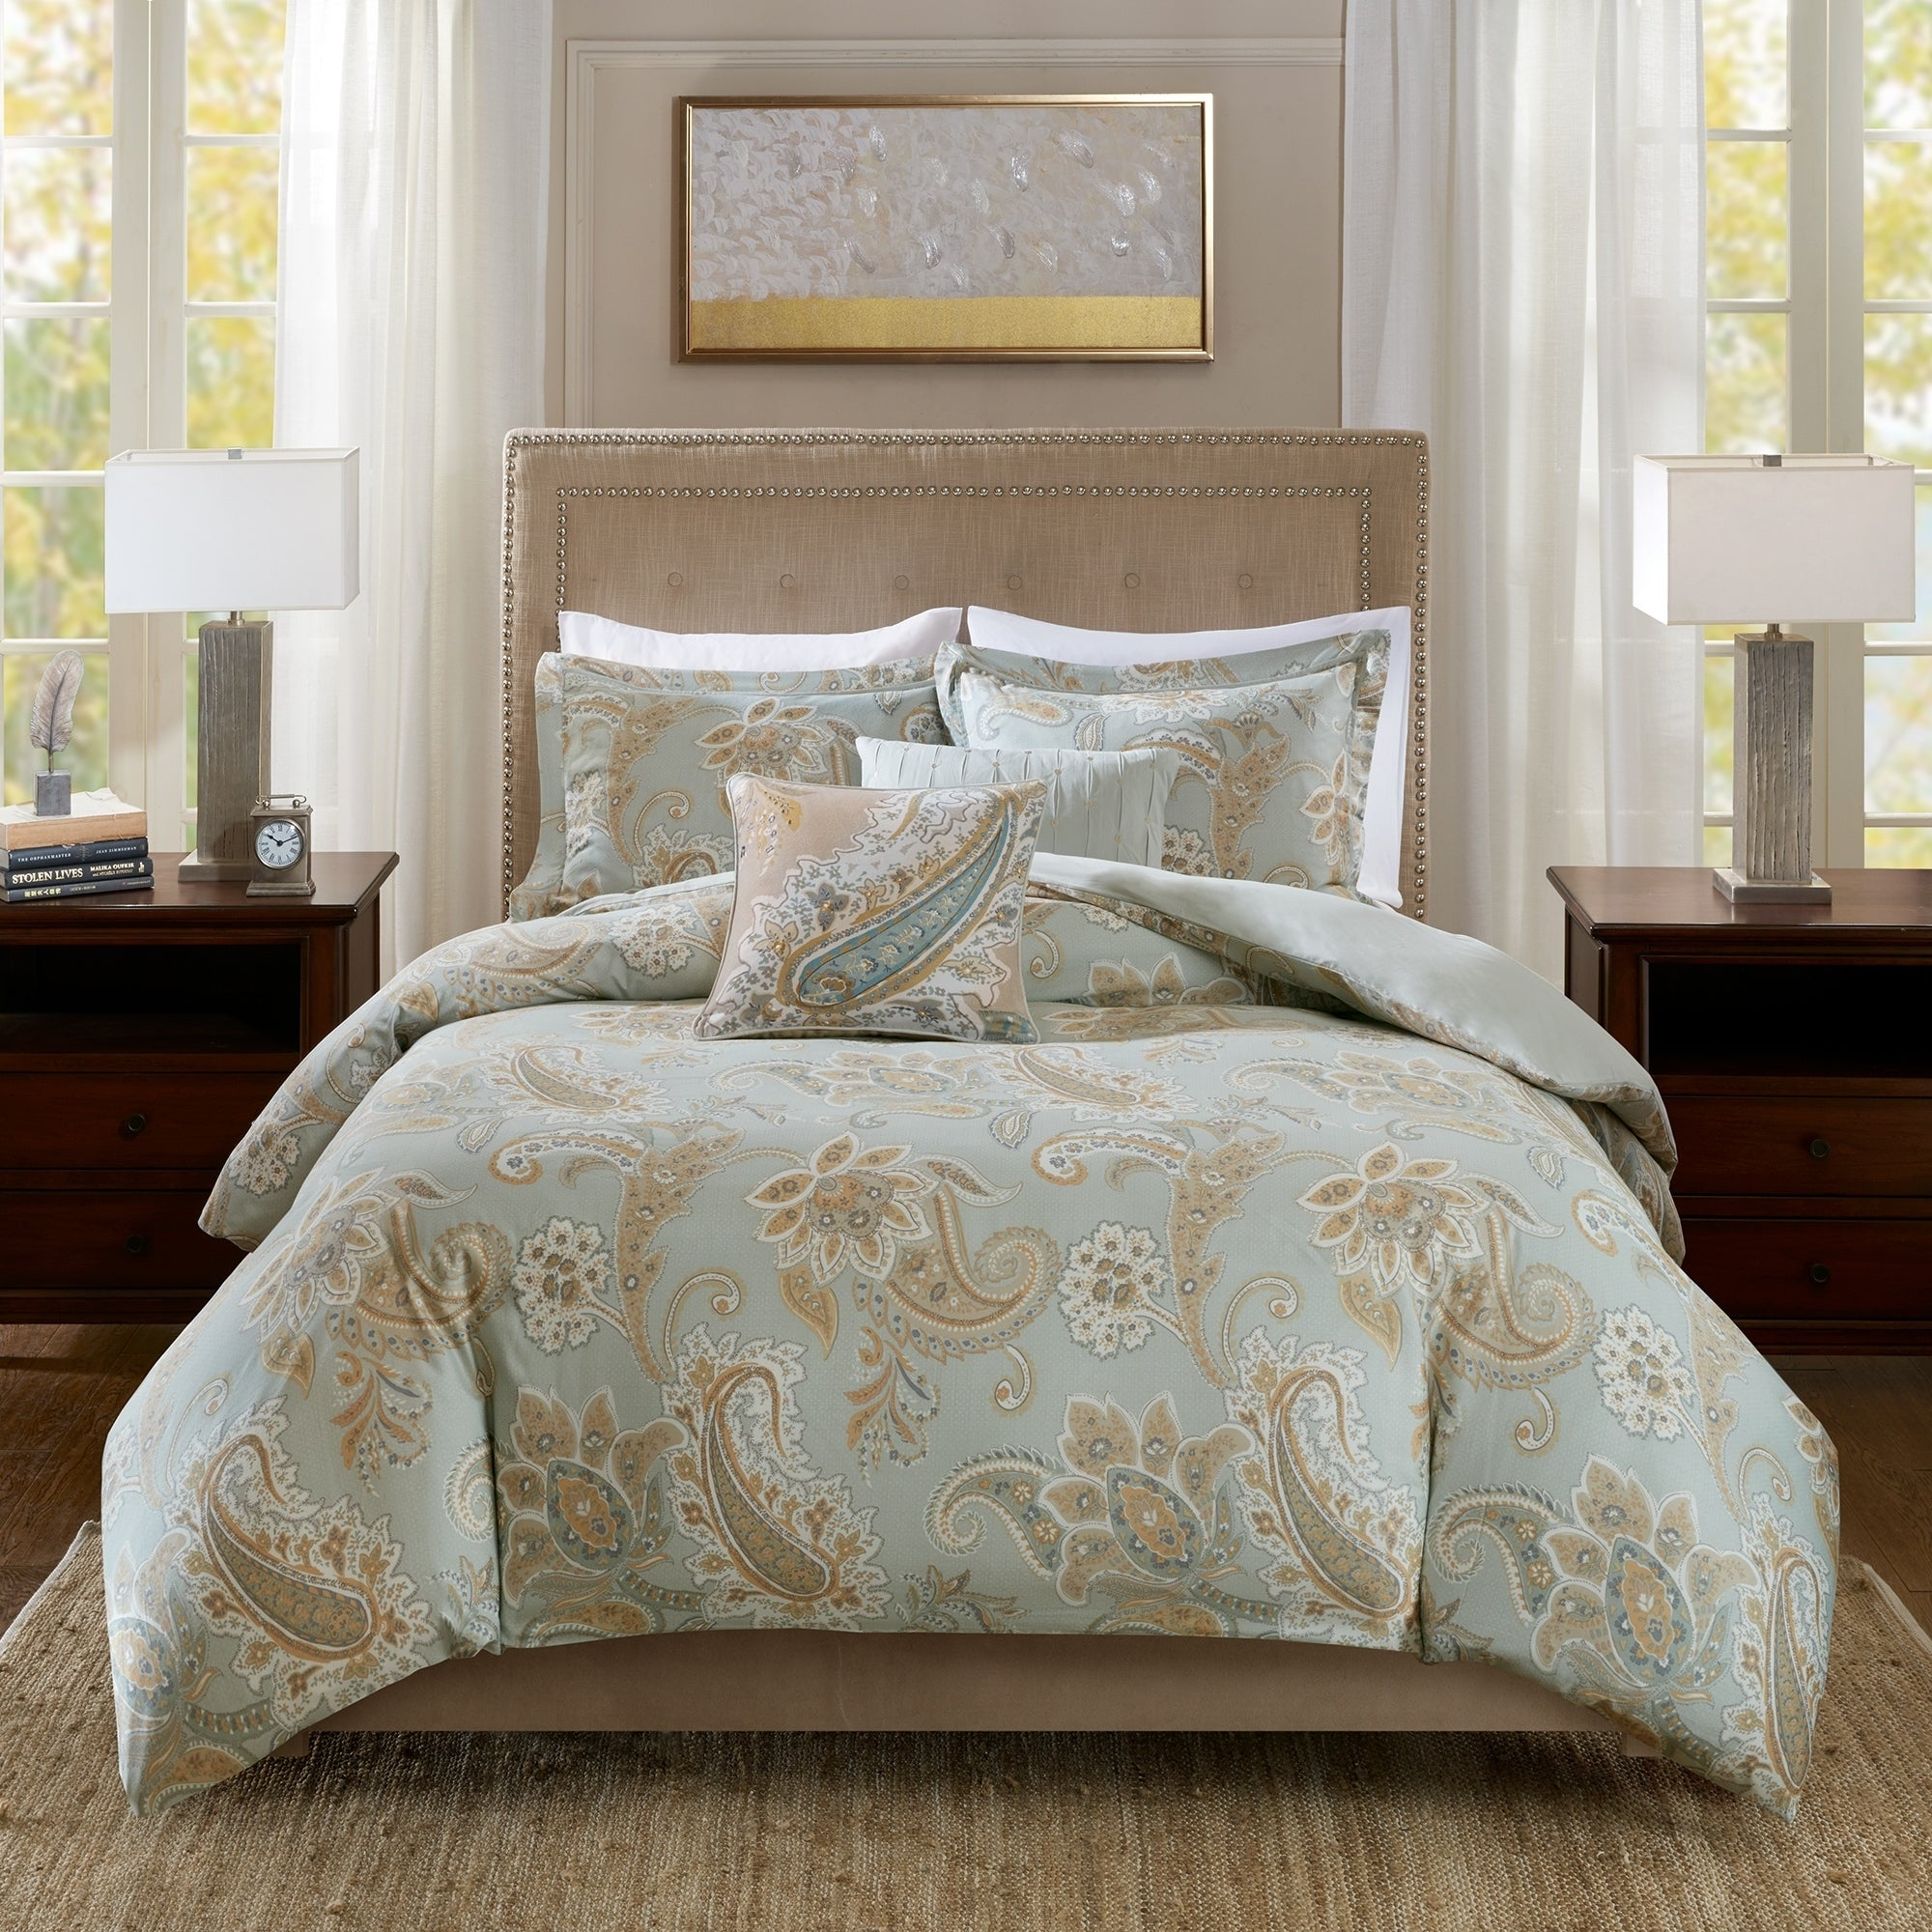 Harbor House Sienna Cotton Printed 5 Piece Duvet Cover Set Multi King//Cal King